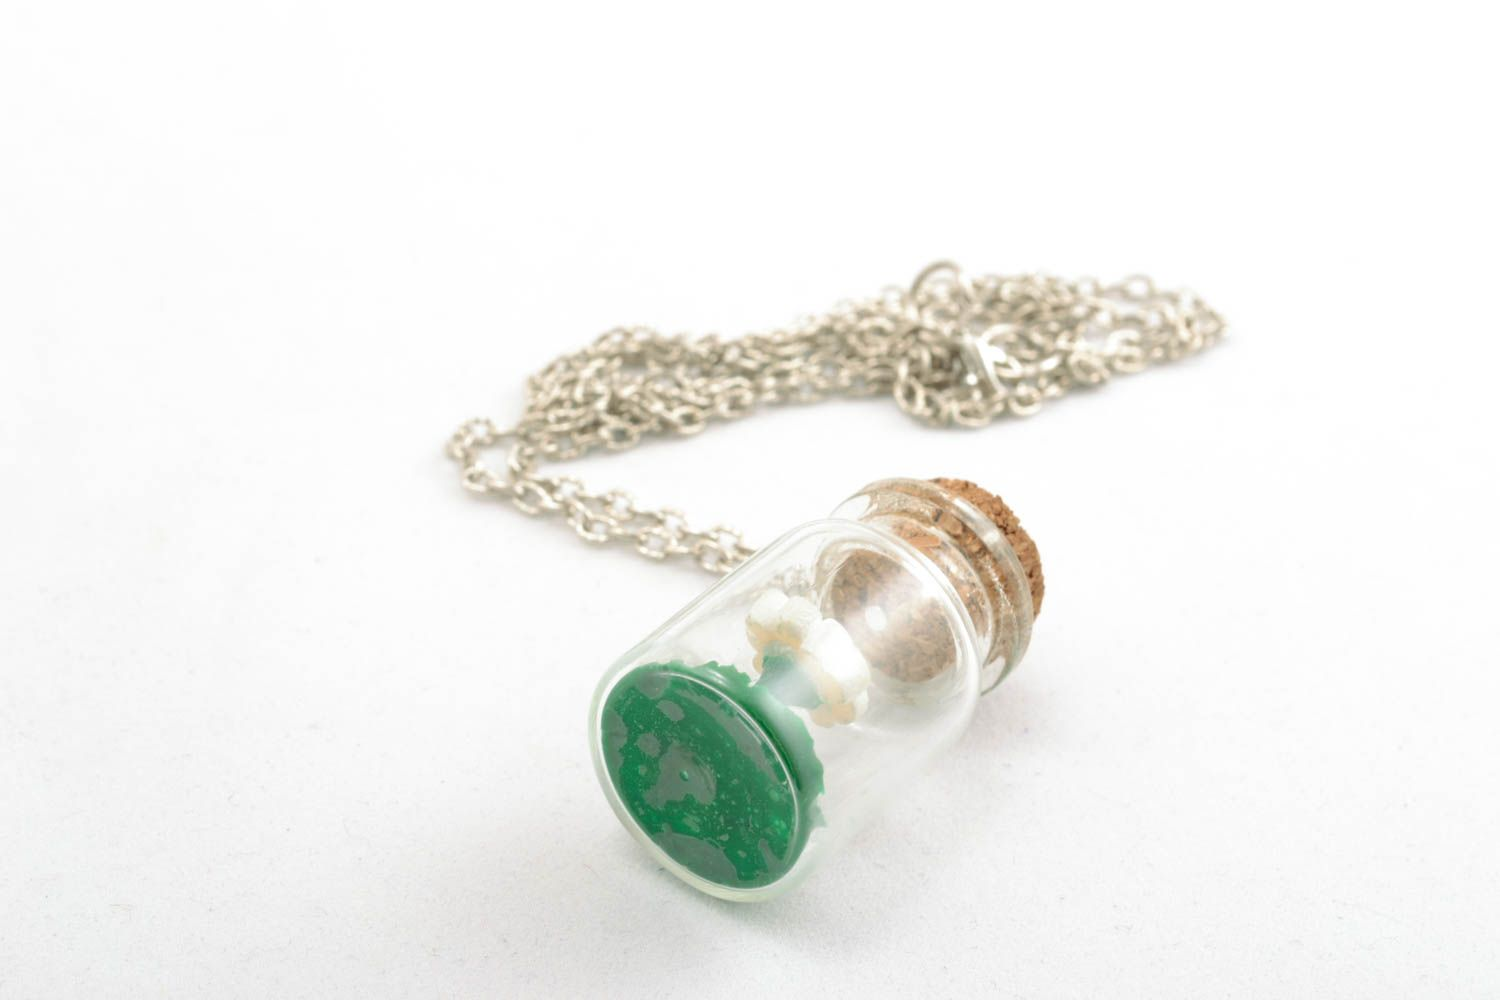 Pendant with a long chain photo 3